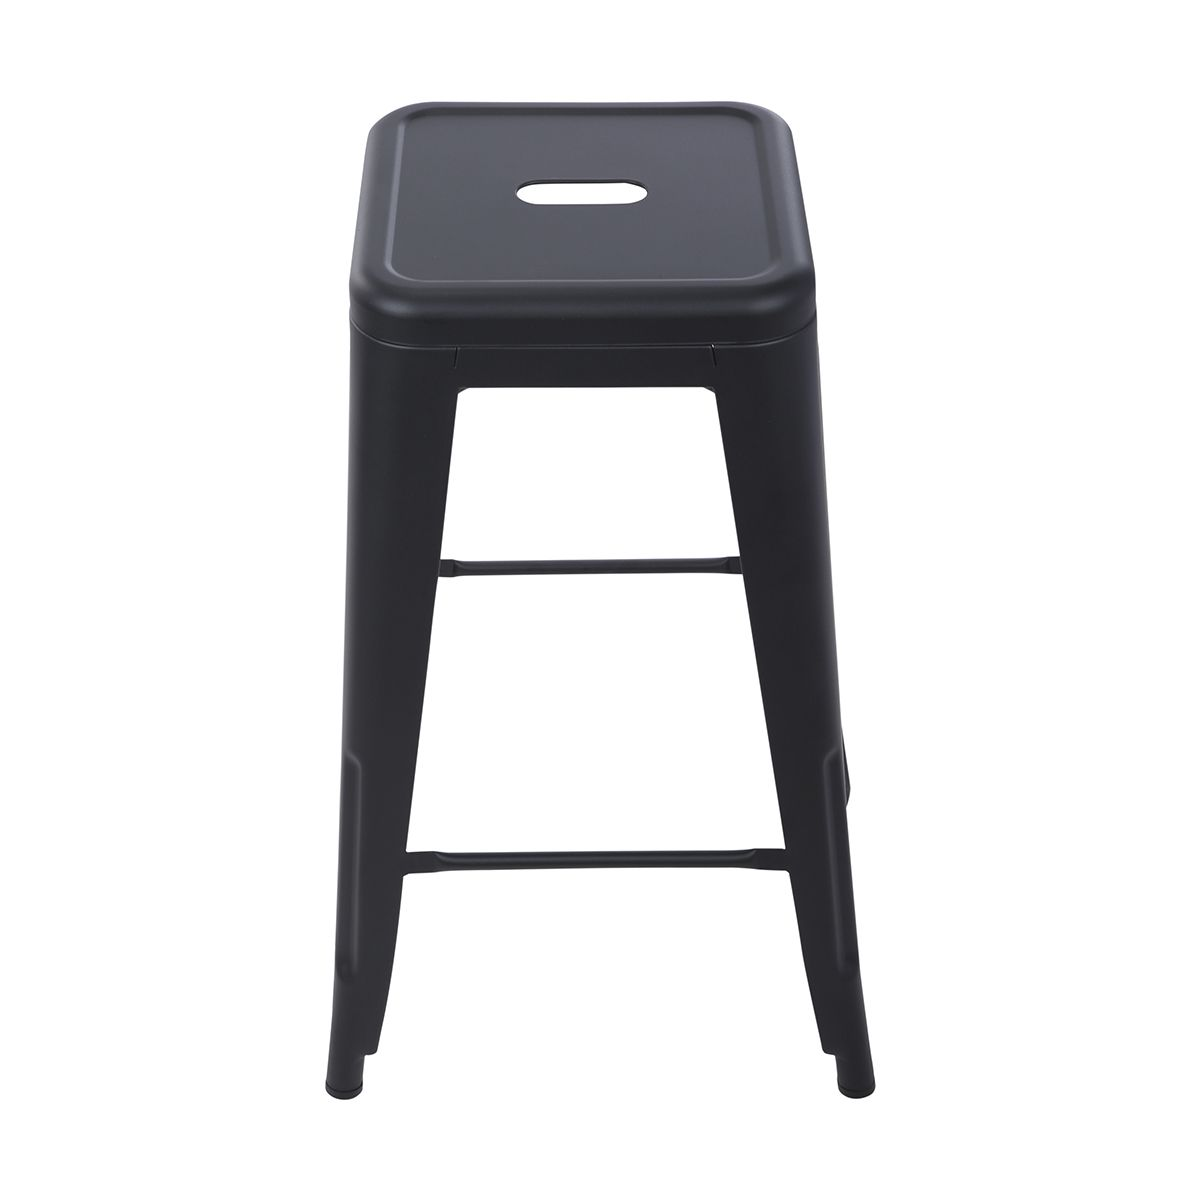 Fine Metal Bar Stool Black Kmart House Home Bar Stools Creativecarmelina Interior Chair Design Creativecarmelinacom